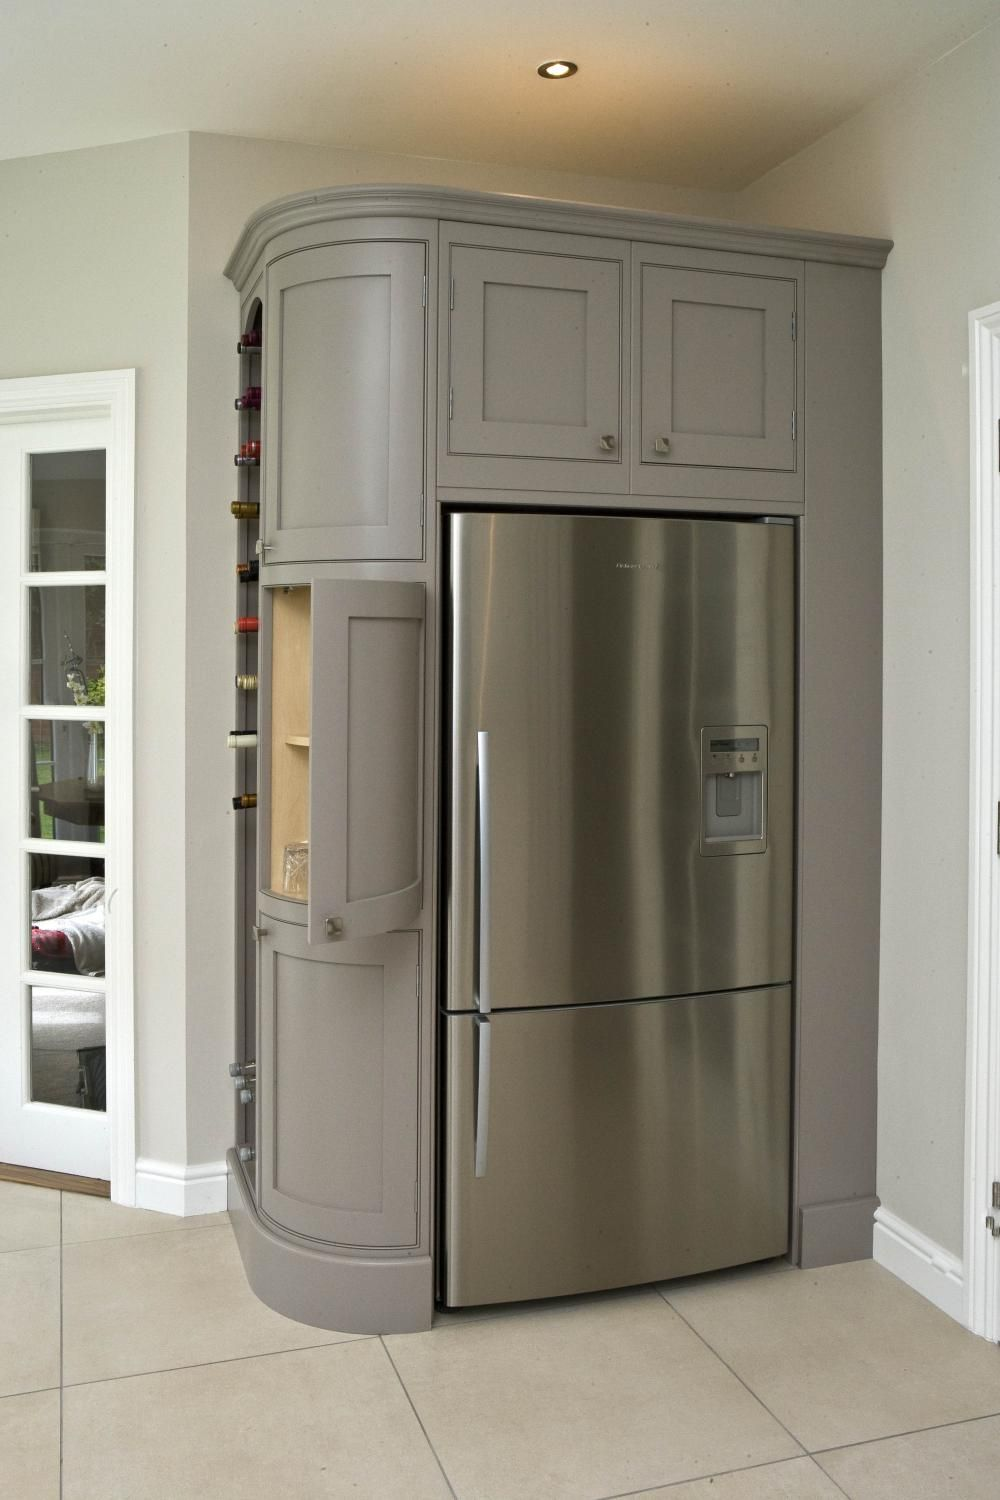 die besten 25 american fridge freezers ideen auf pinterest kleiner k hlschrank mit. Black Bedroom Furniture Sets. Home Design Ideas